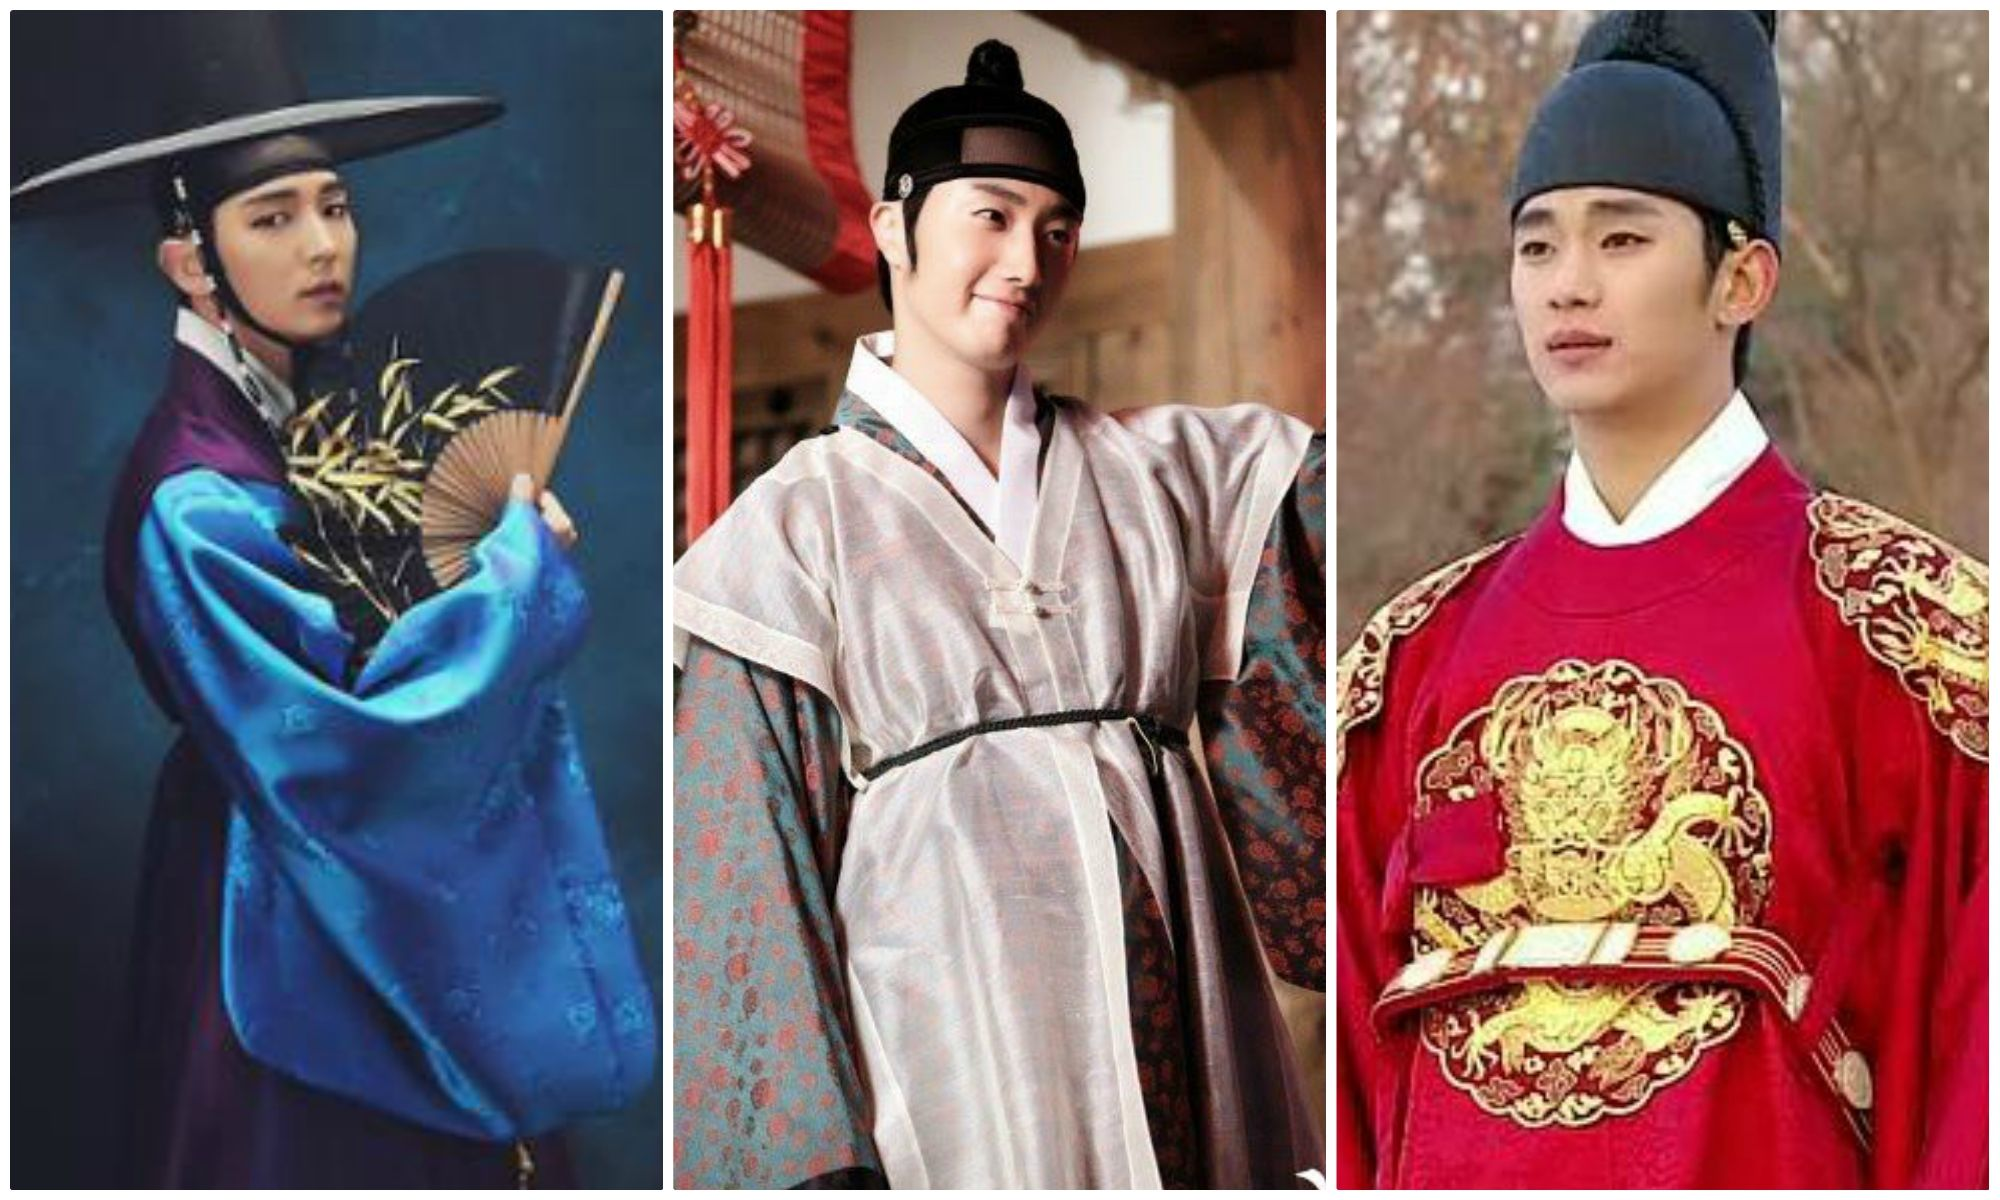 Top 6 Most Handsome Actors In Korean Traditional Clothes